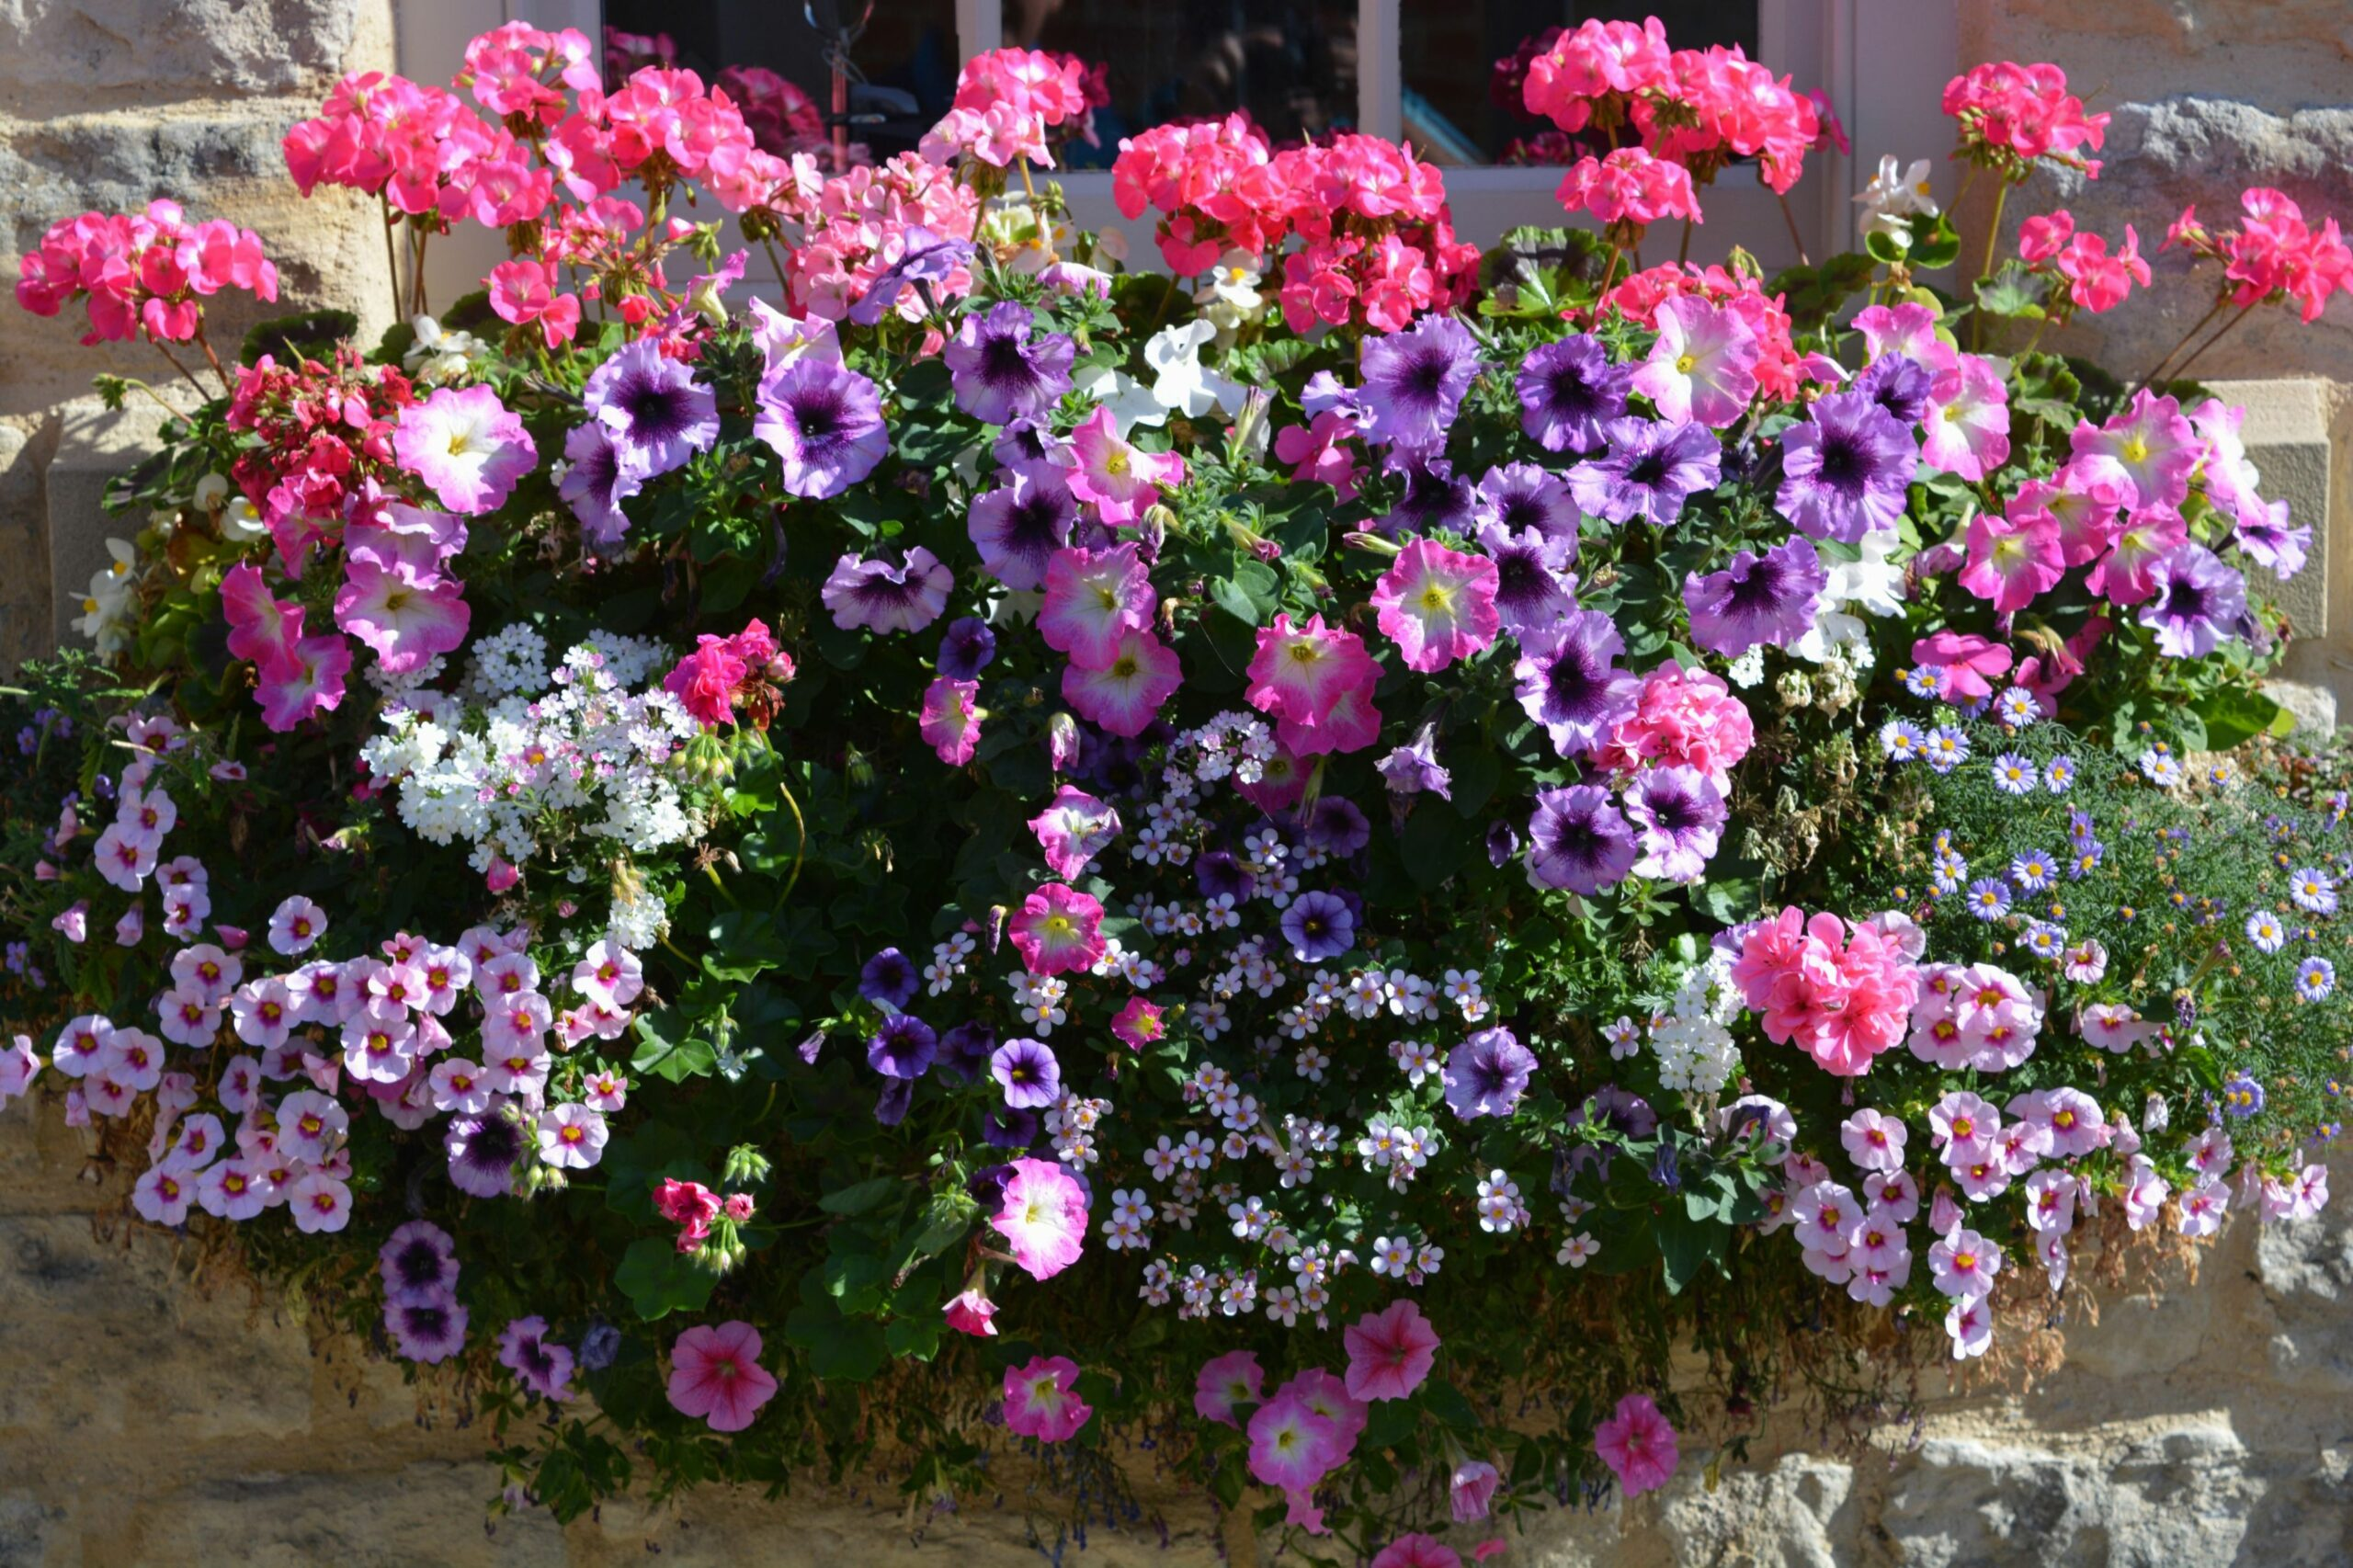 Flowering Window Box Ideas That Work for Sunny Gardens - window garden ideas india